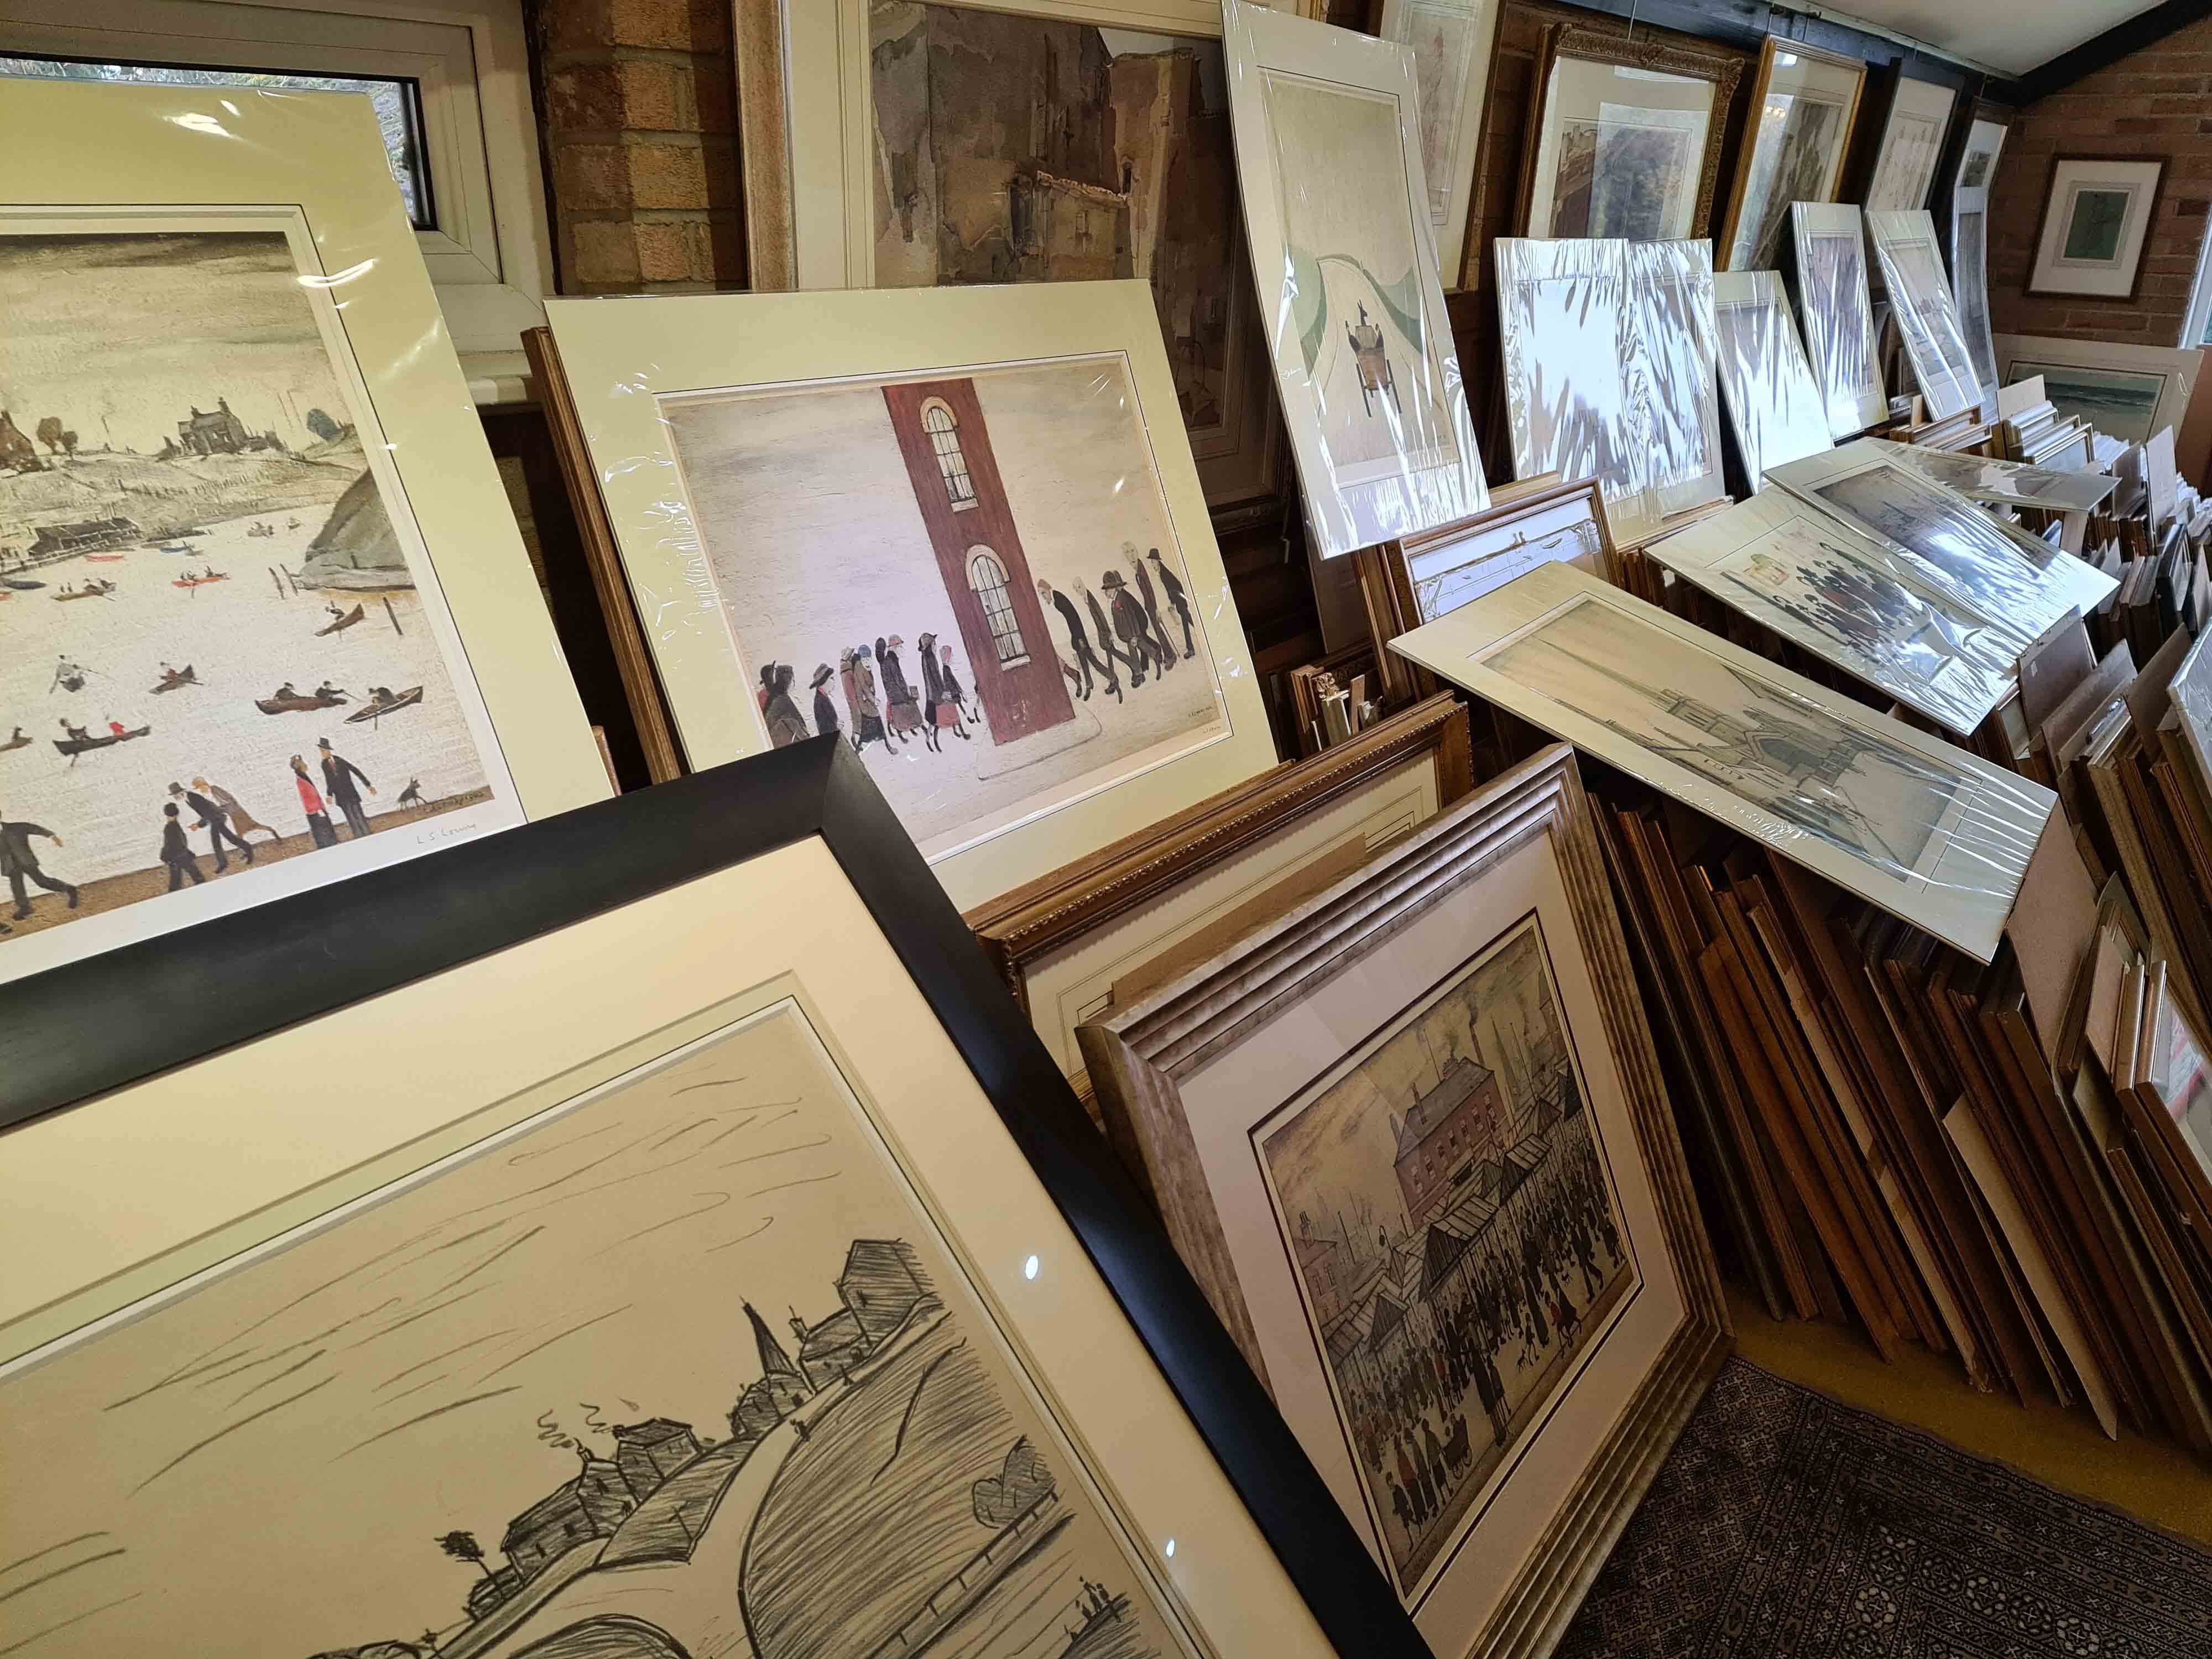 lowry studio 4 prints